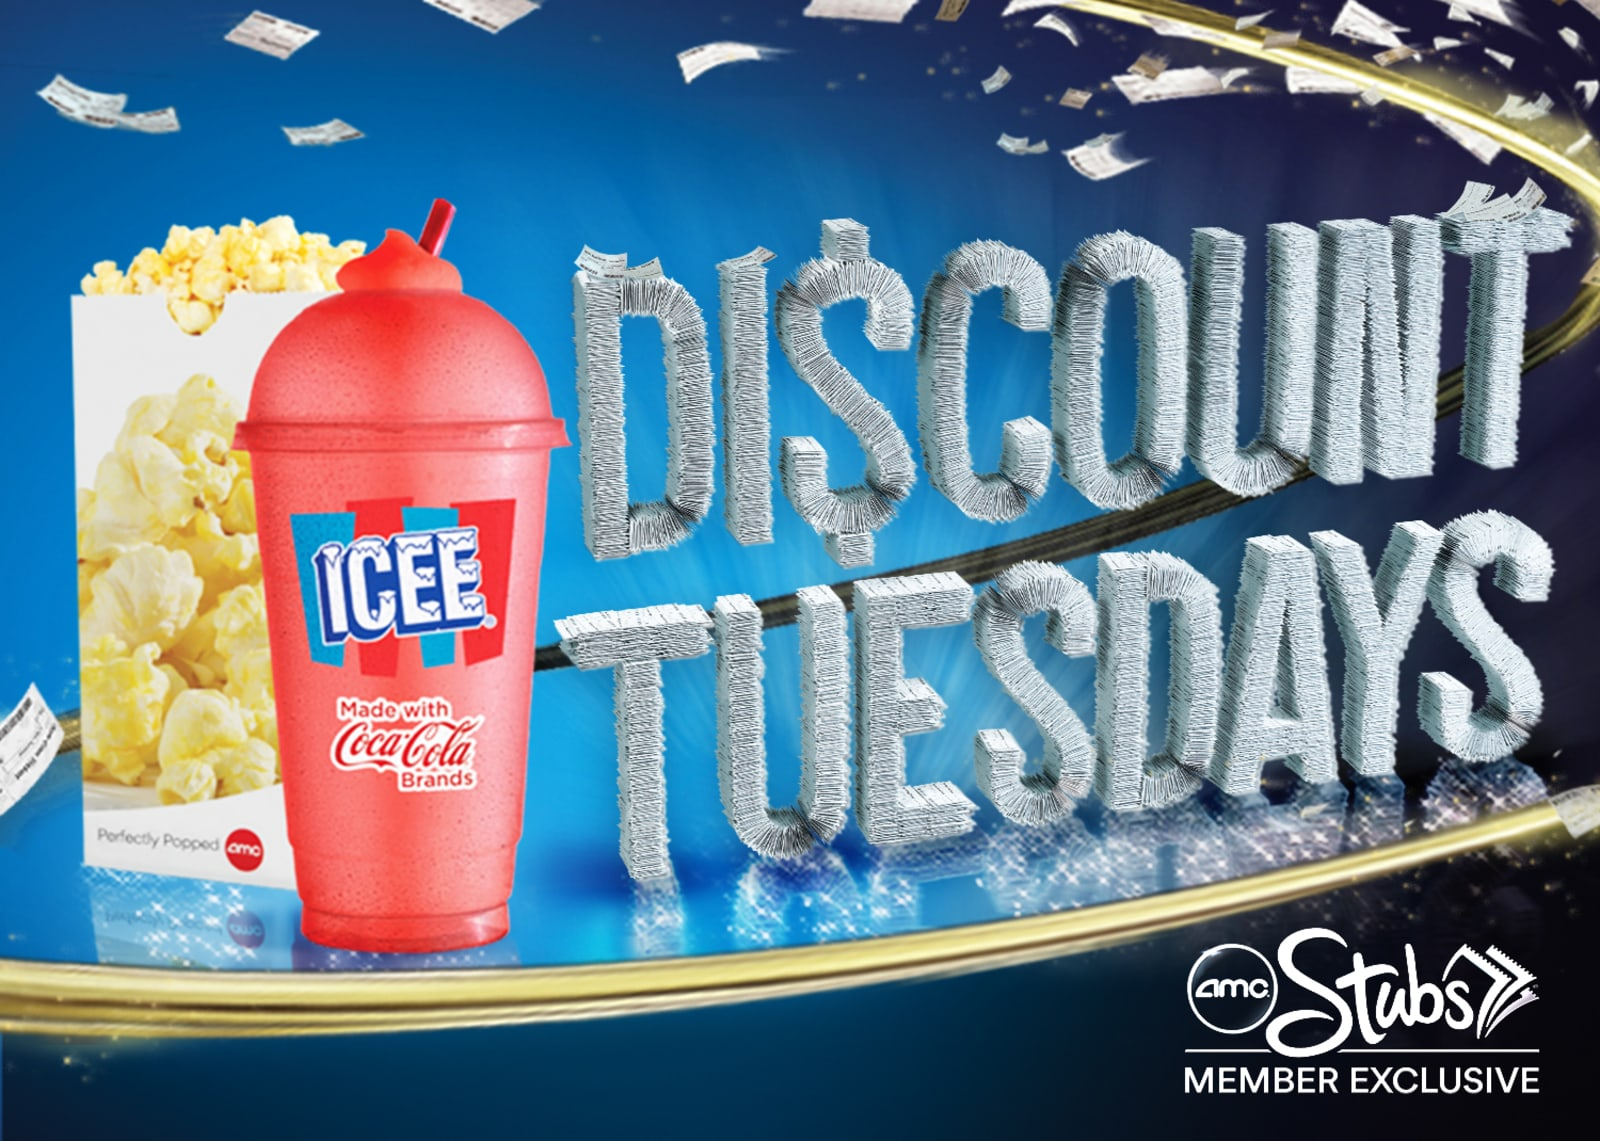 Amc Changes 5 Tuesdays To Discount Tuesdays Raises Price Up To 7 In Some Markets